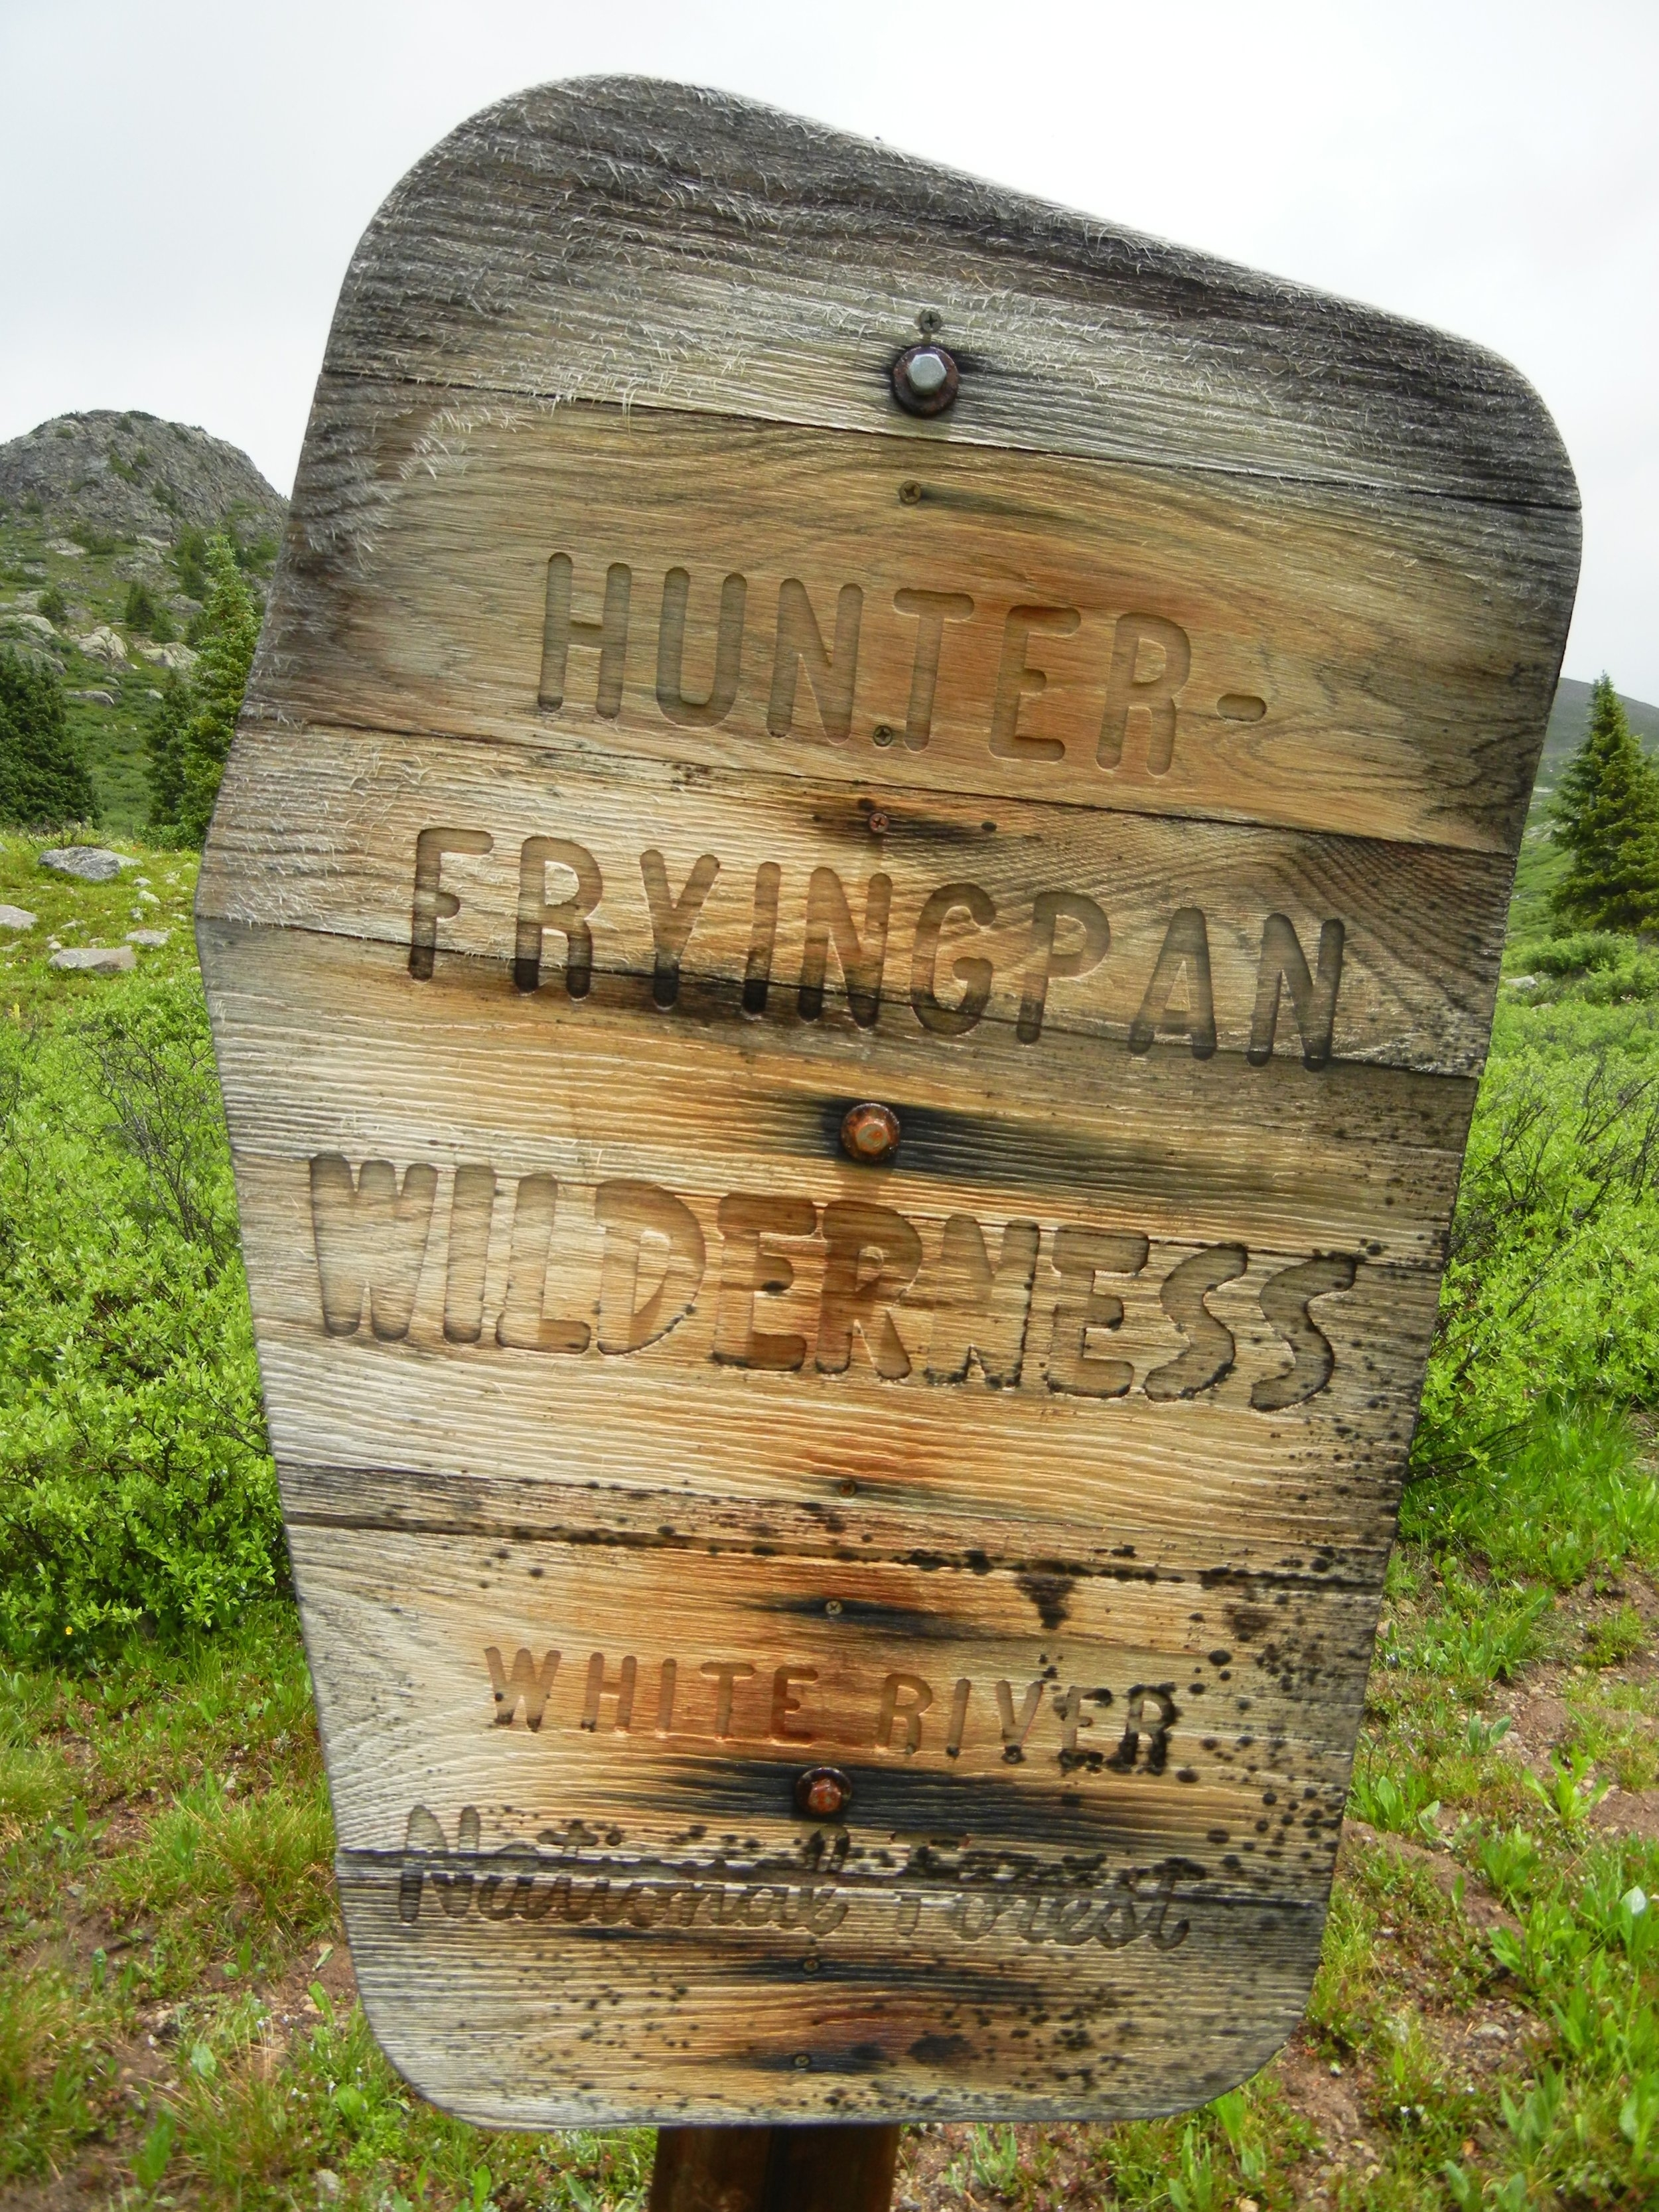 Highway 82 is bordered to the north by the Hunter-Fryingpan Wilderness.